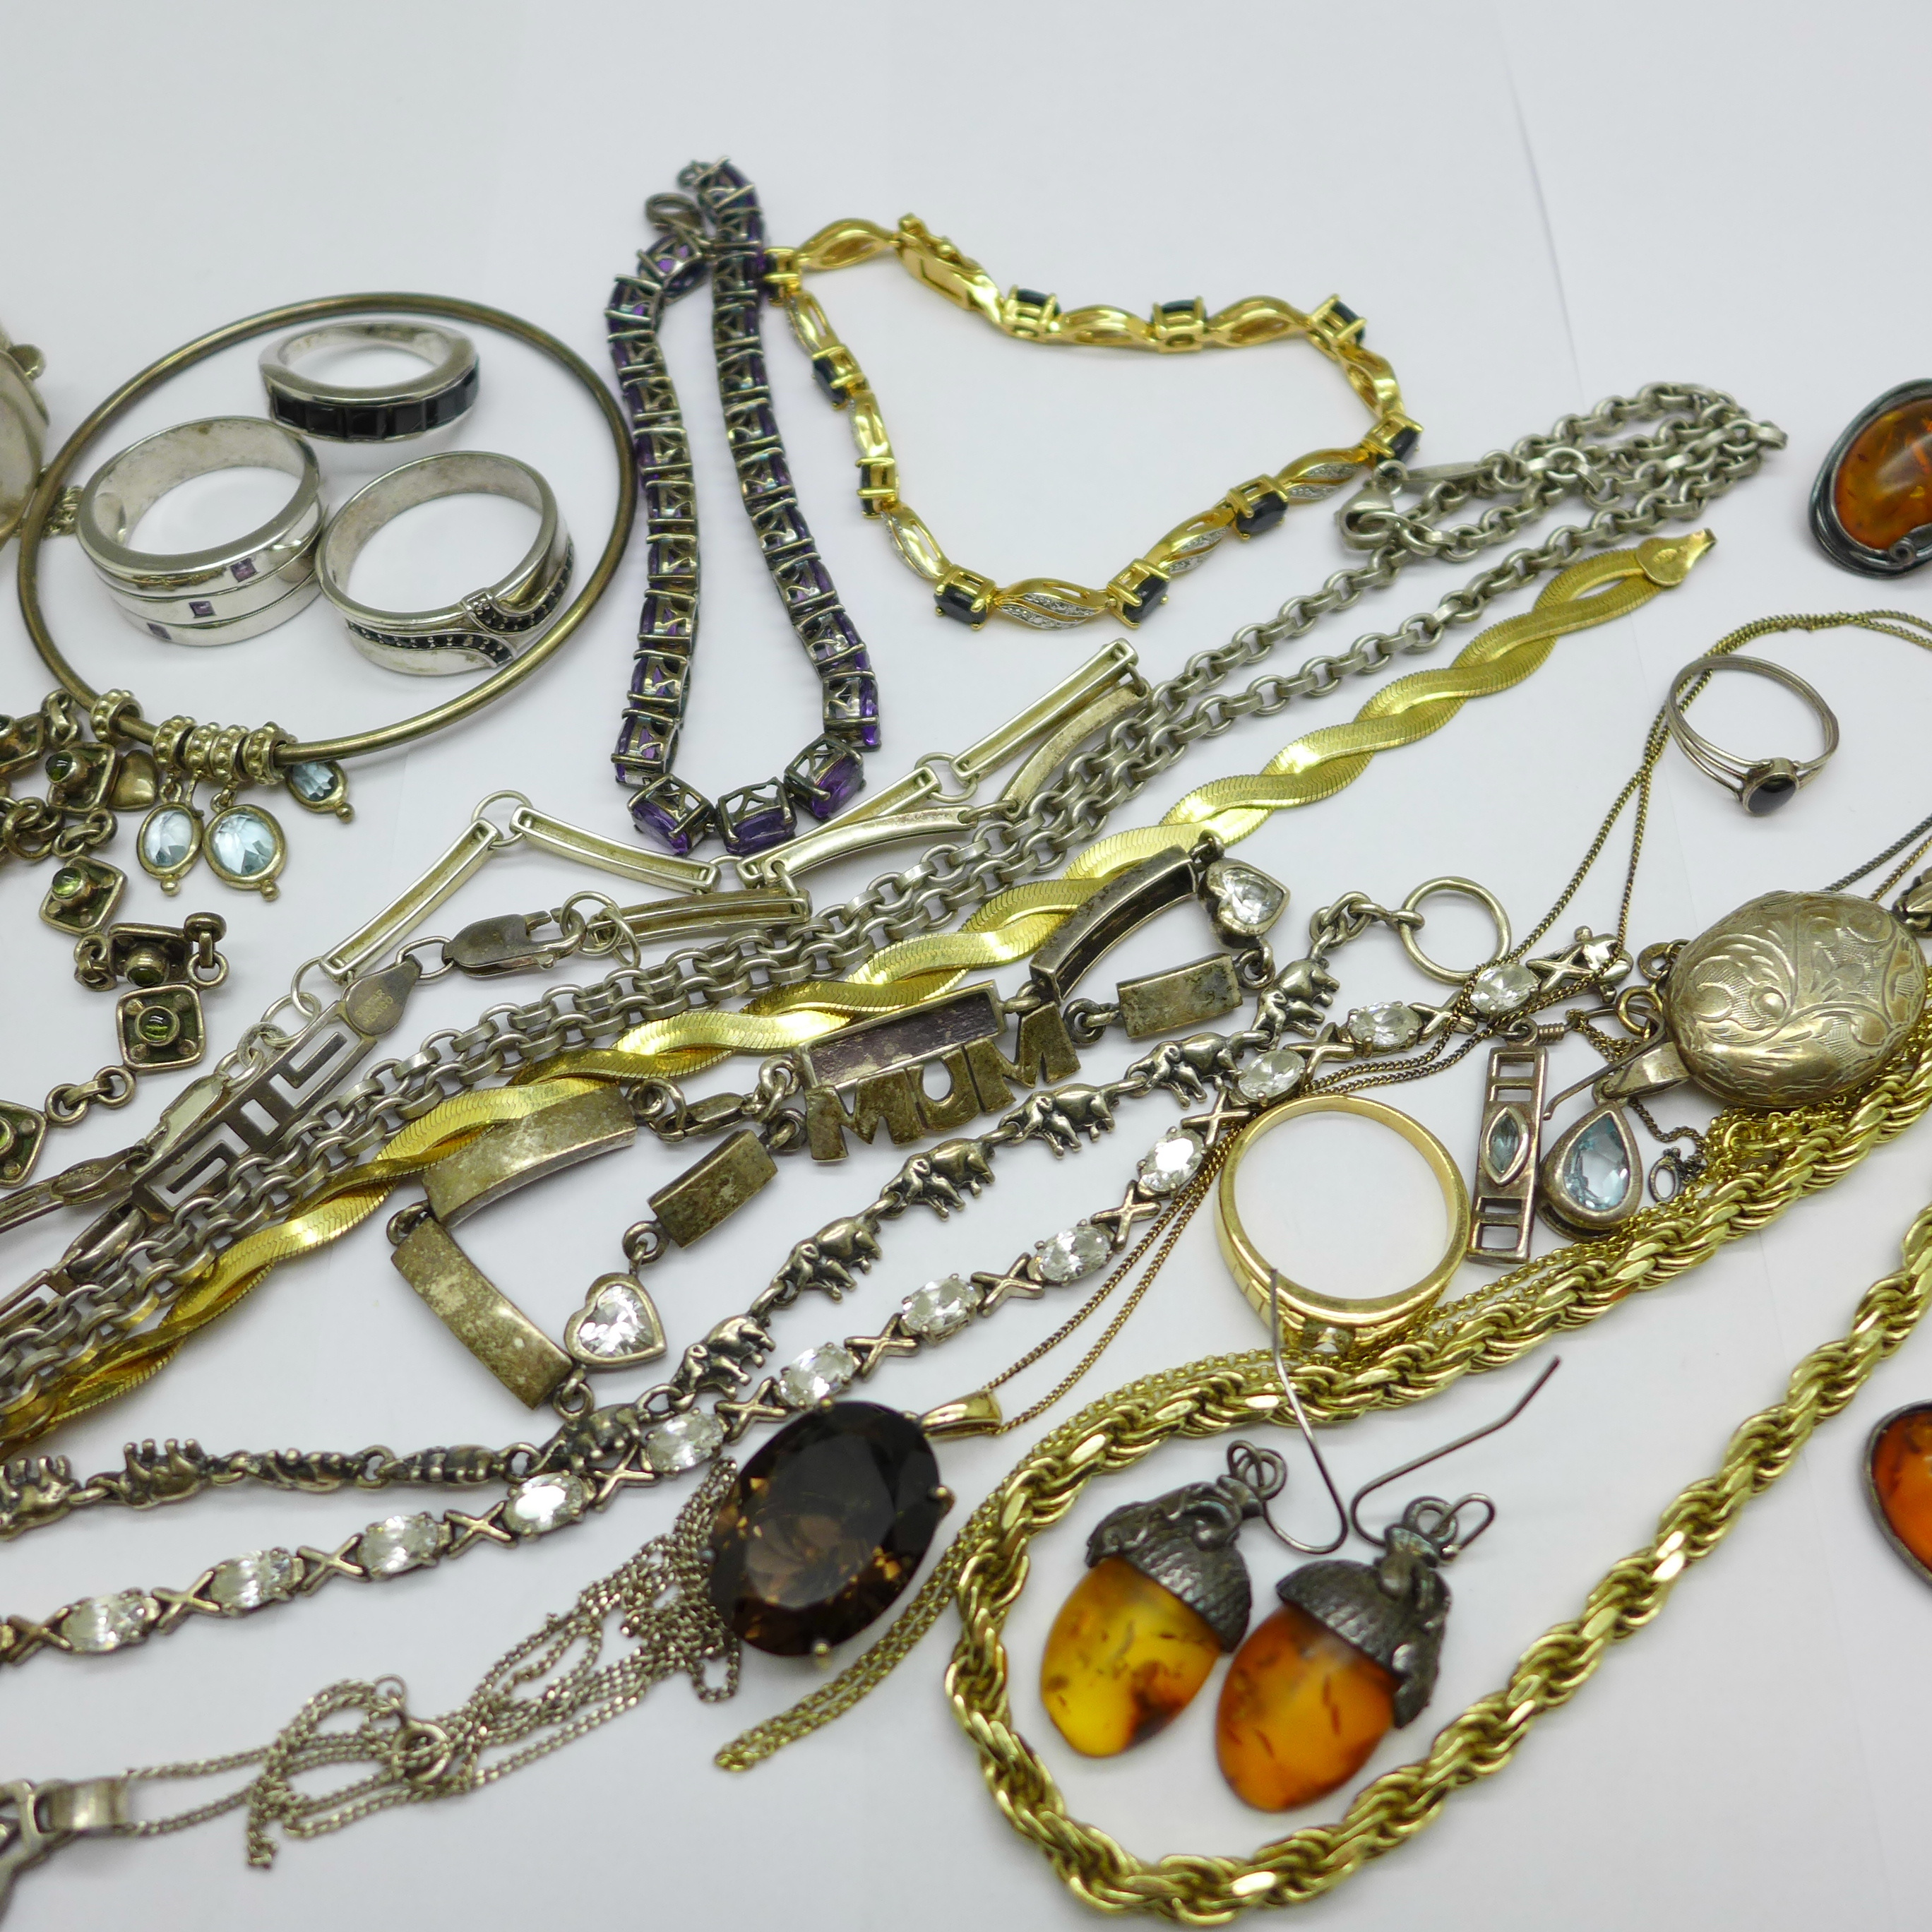 Silver jewellery including a hallmarked bangle, an elephant bracelet and a Thomas Sabo neck chain, - Image 4 of 5